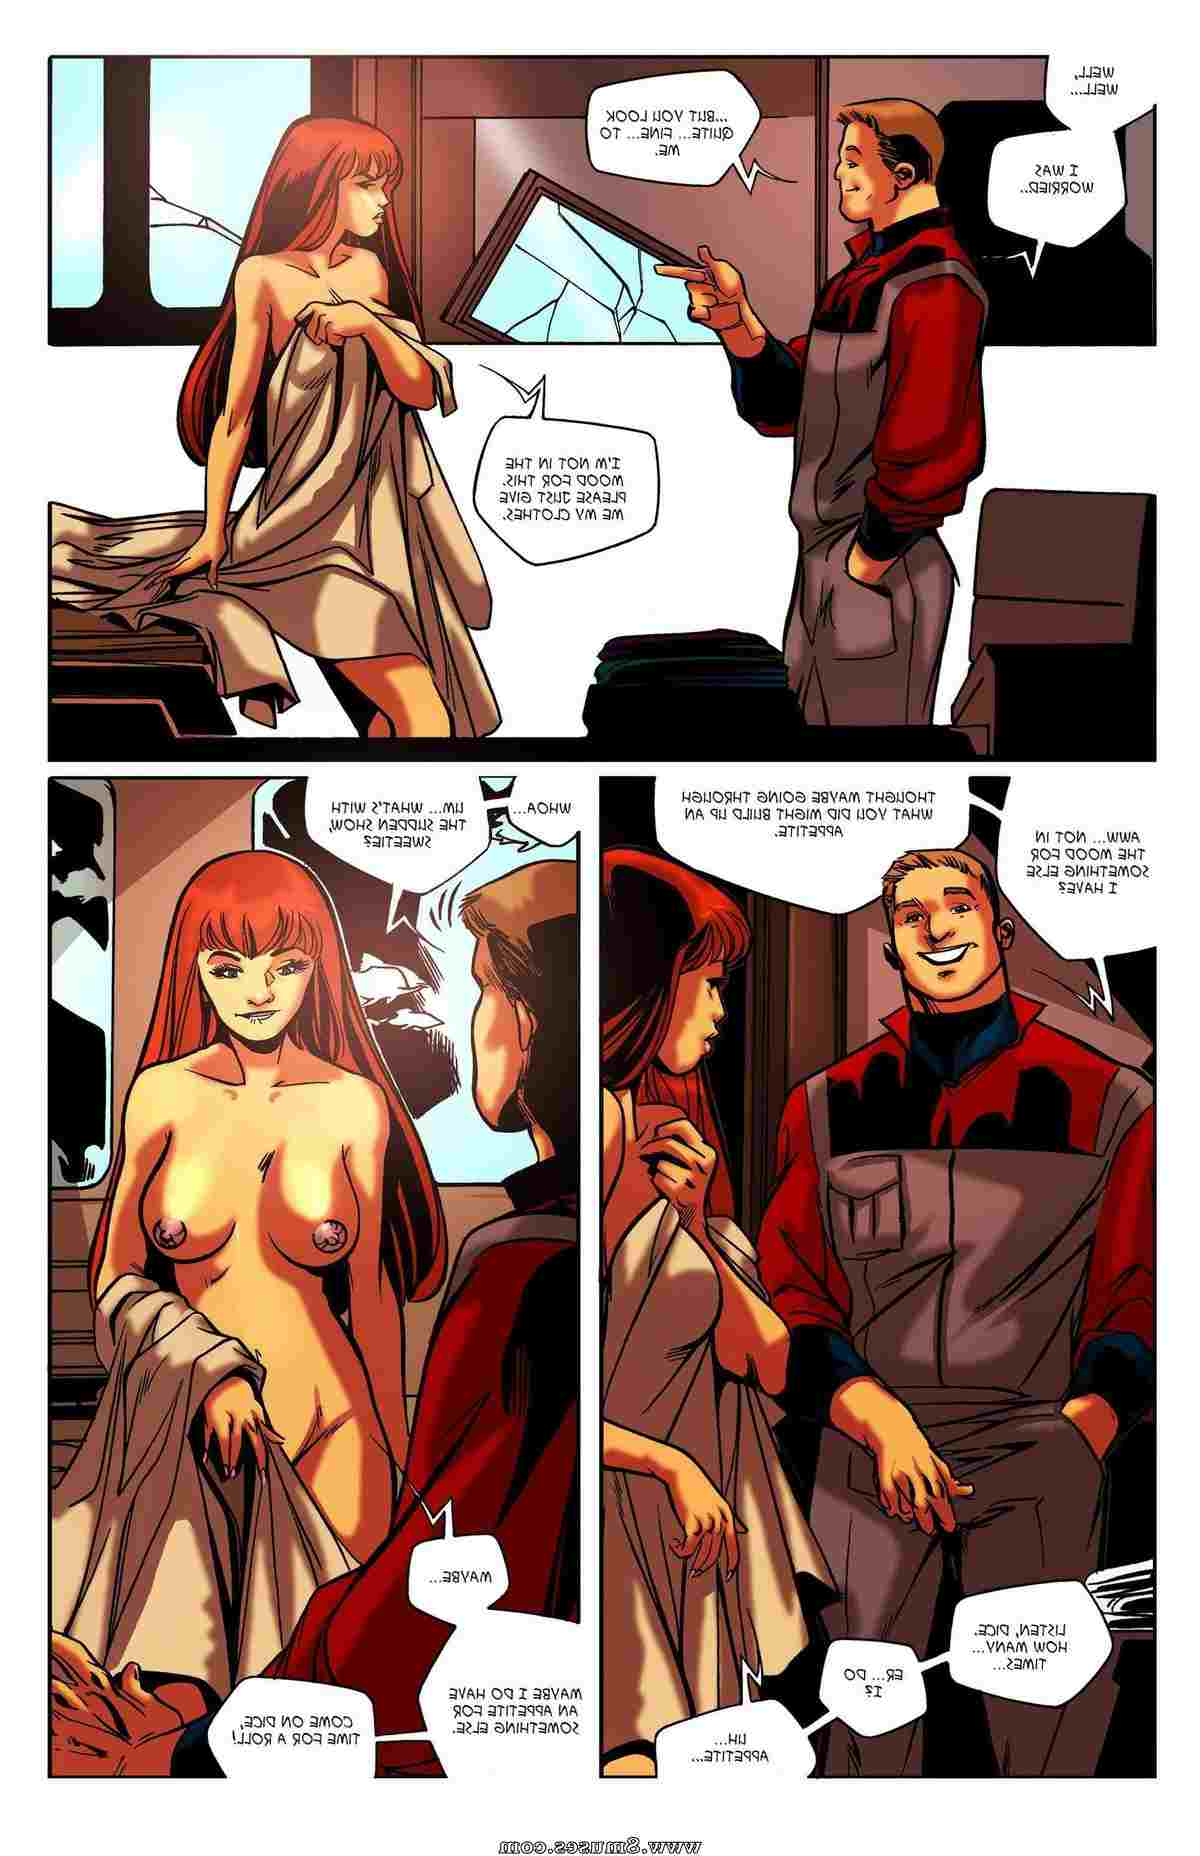 Giantess-Club-Comics/Bubbling-Up-from-the-Abyss Bubbling_Up_from_the_Abyss__8muses_-_Sex_and_Porn_Comics_18.jpg